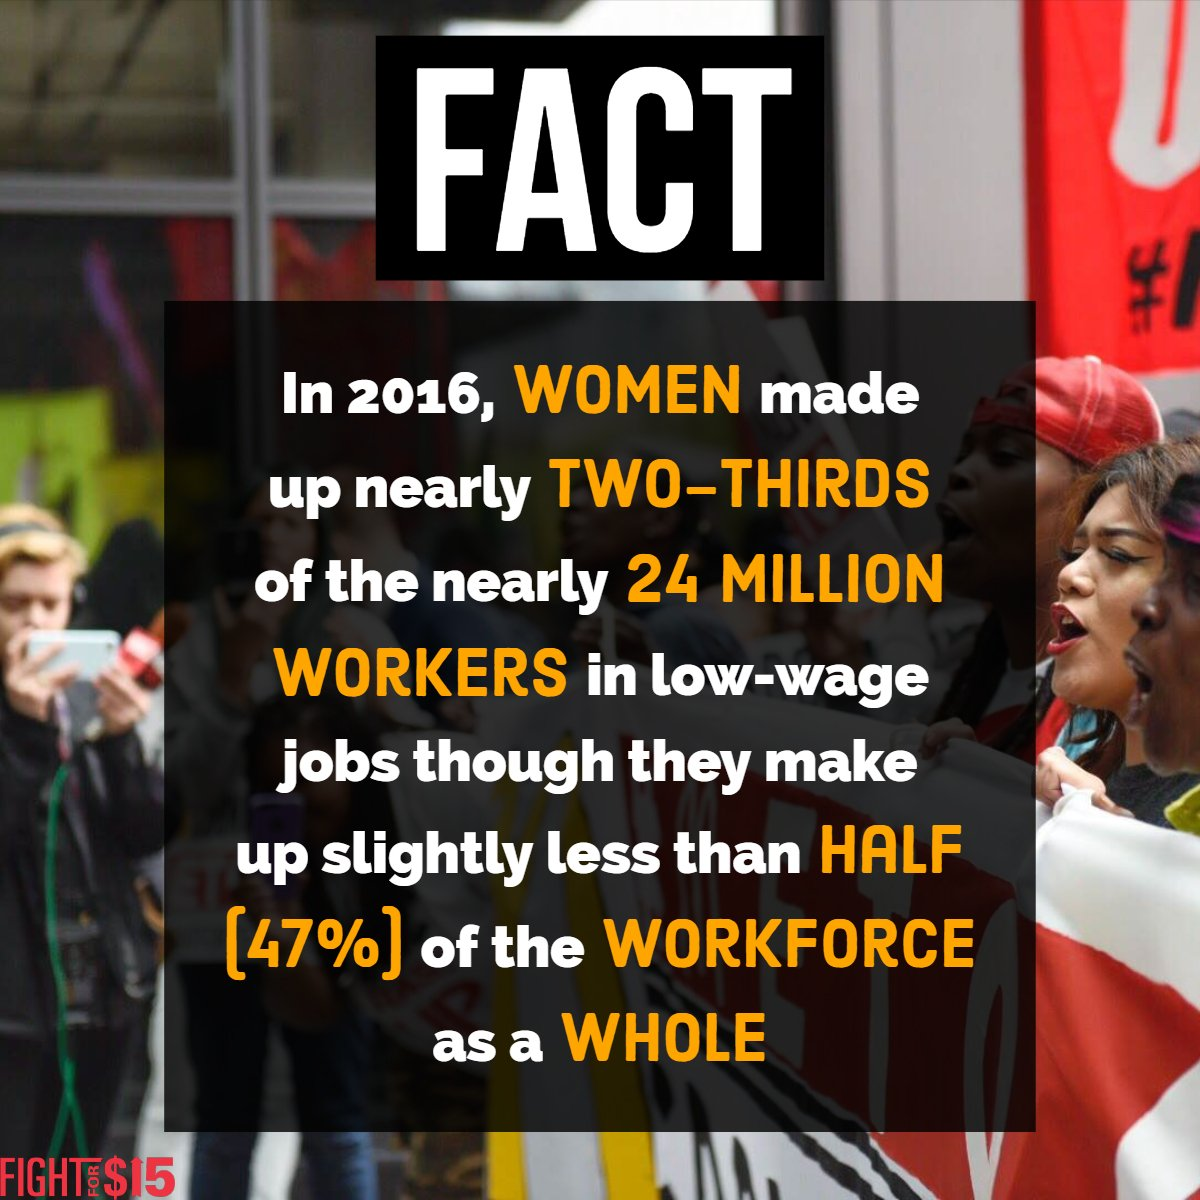 FACT: Women make up nearly two-thirds of the roughly 24 million workers in low-wage jobs https://t.co/2sXEXecECl #FightFor15